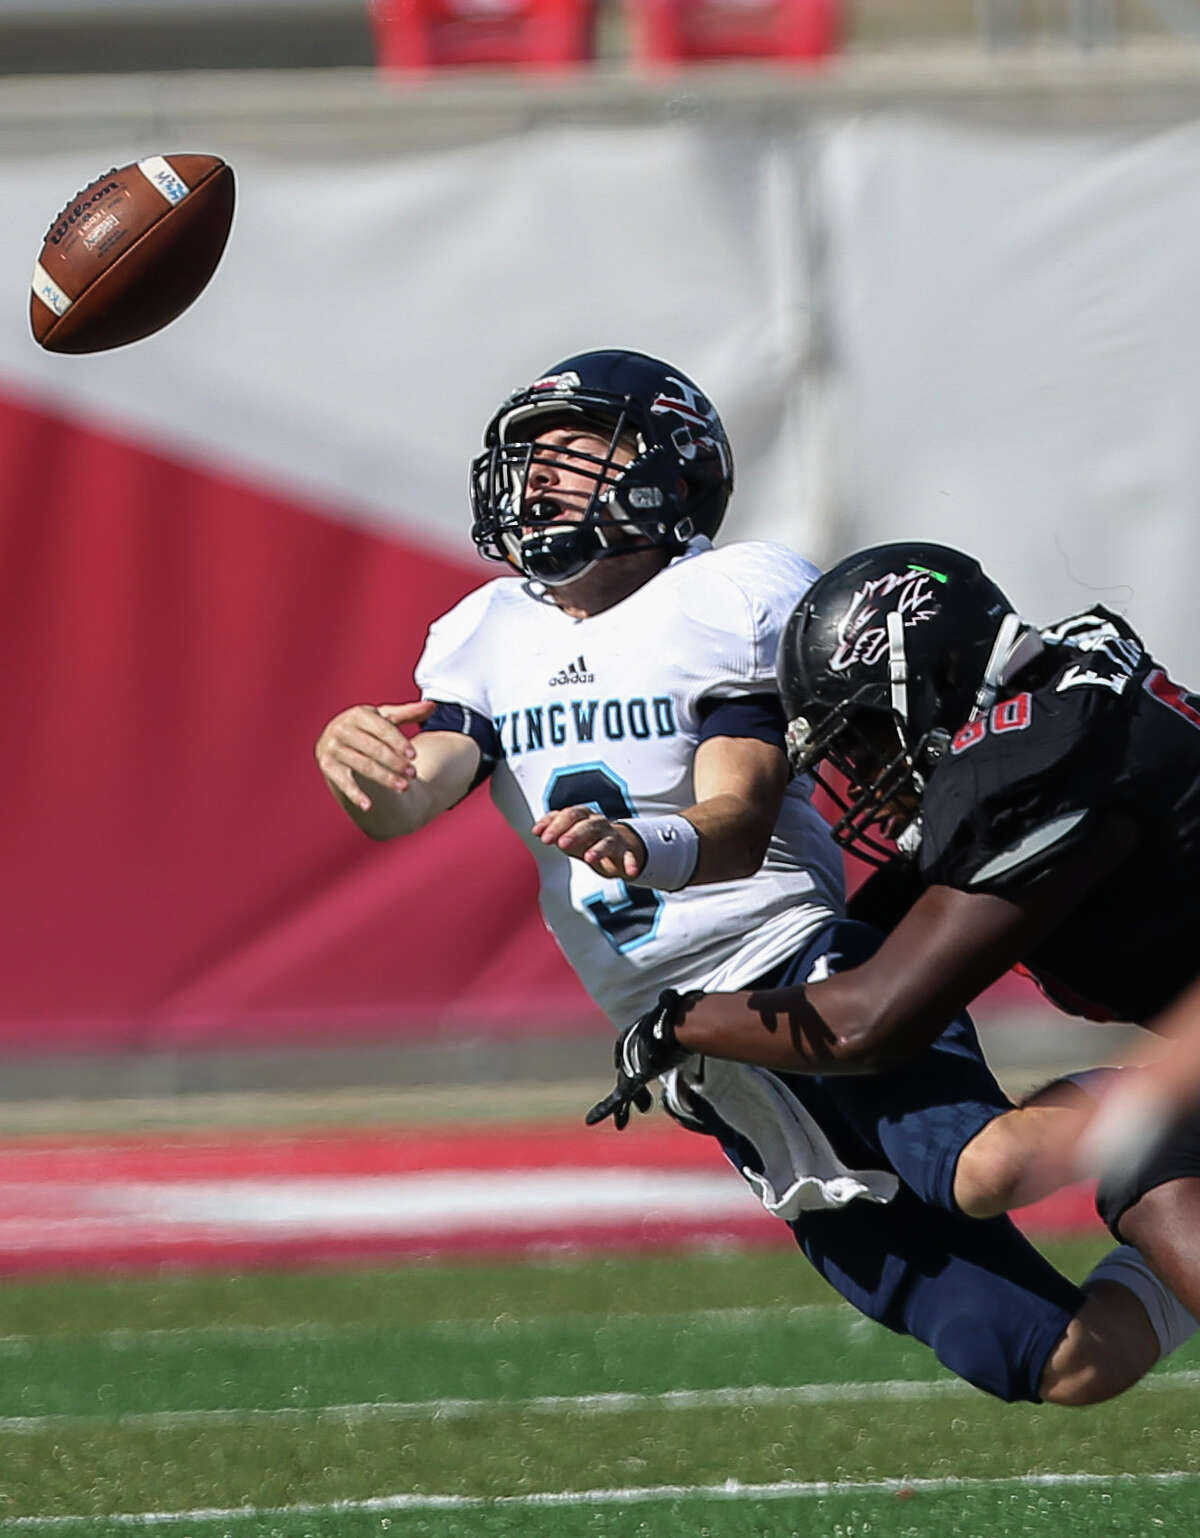 Kingwood quarterback Matt Slayton, left, is sacked by Langham Creek's Ernest Thomas during the first quarter of the Class 6A Division 2 Region 3 playoffs game at TDECU Stadium on Saturday, Dec. 2, 2017, in Houston.